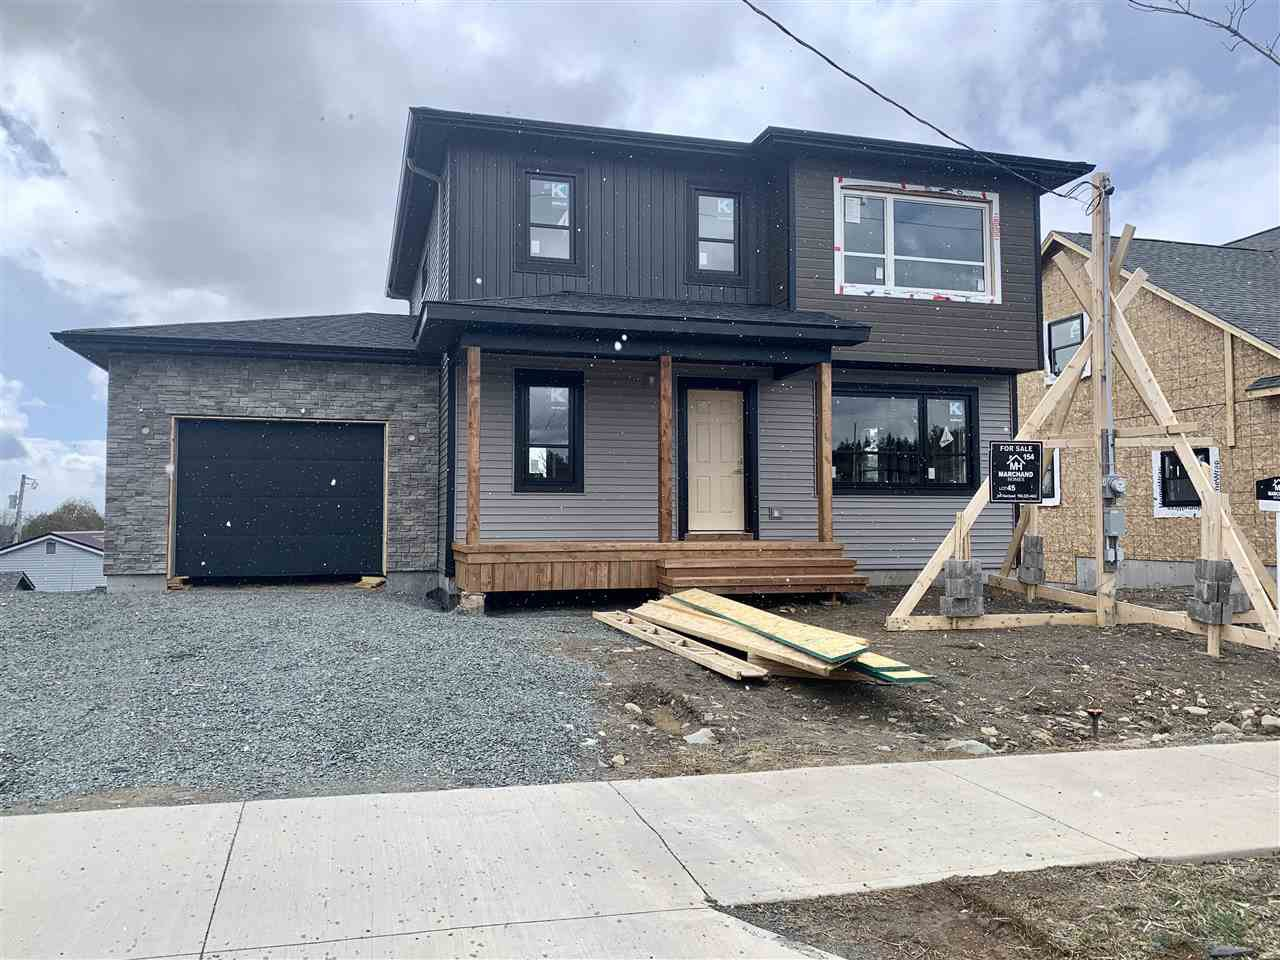 Main Photo: Lot 45 154 Marigold Drive in Sackville: 26-Beaverbank, Upper Sackville Residential for sale (Halifax-Dartmouth)  : MLS®# 201926370